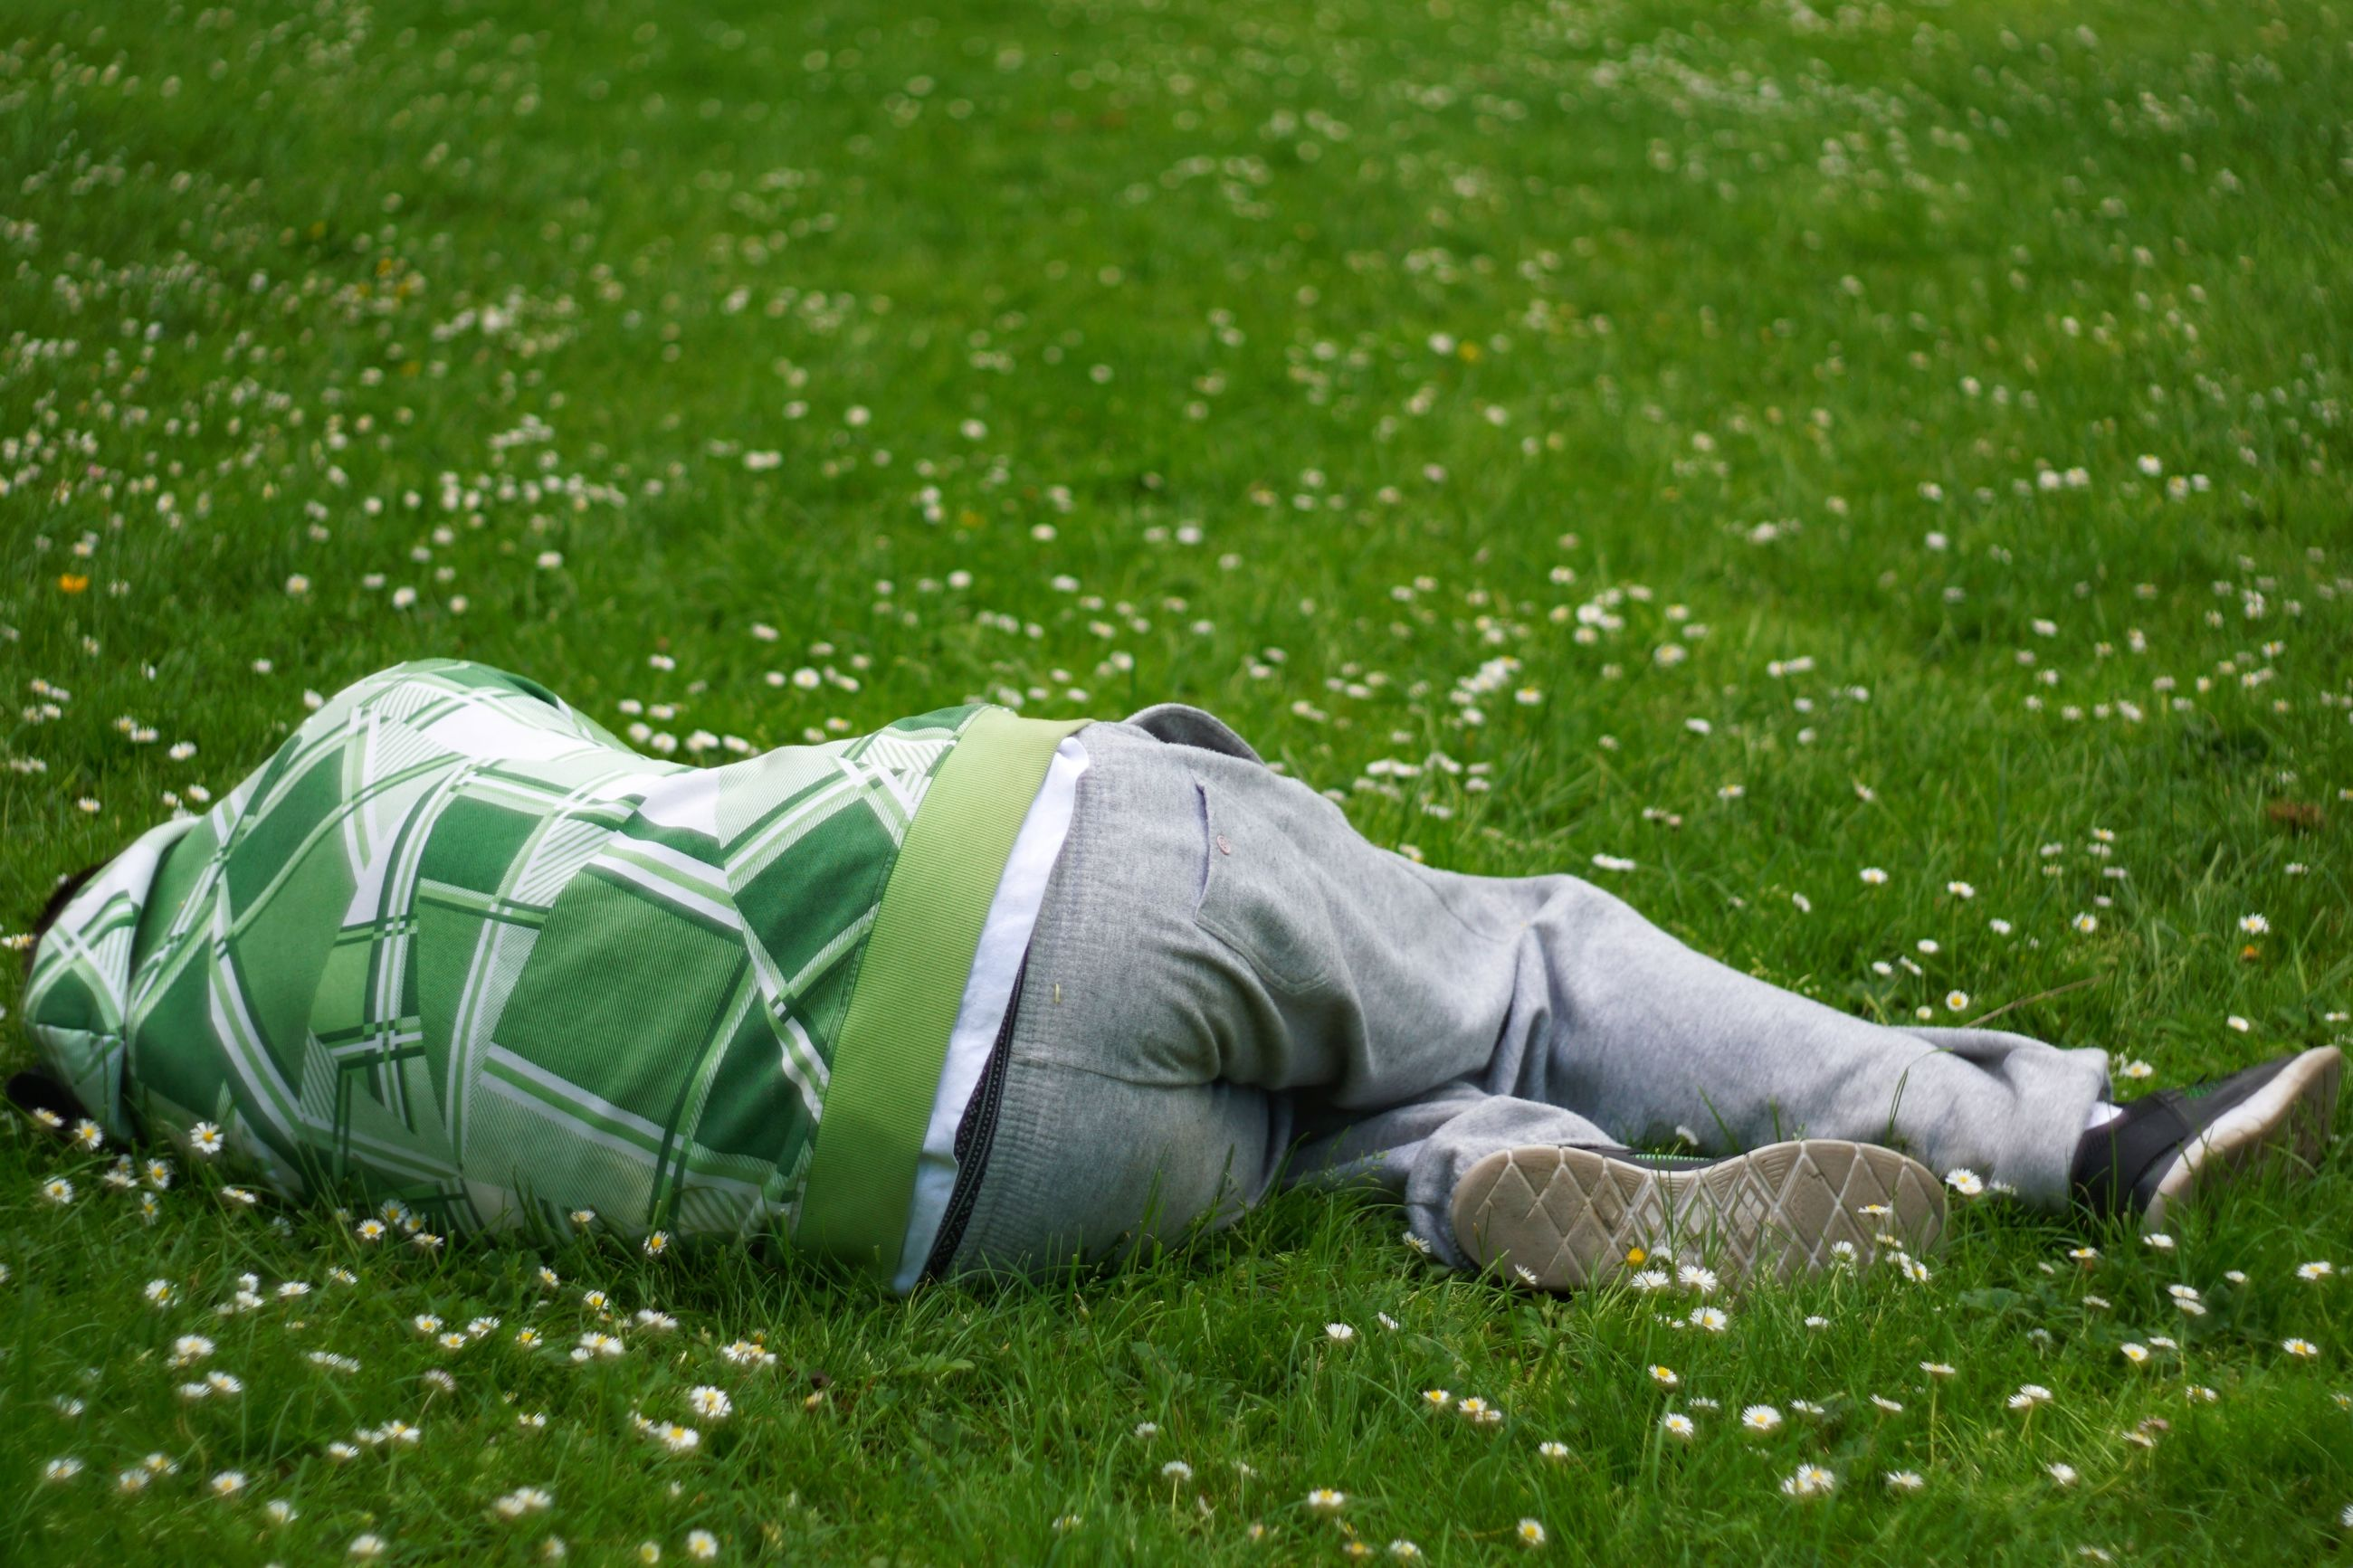 grass, lying down, plant, relaxation, one person, nature, sleeping, day, green color, tired, lying on back, men, exhaustion, field, lawn, resting, adult, land, casual clothing, napping, uniform